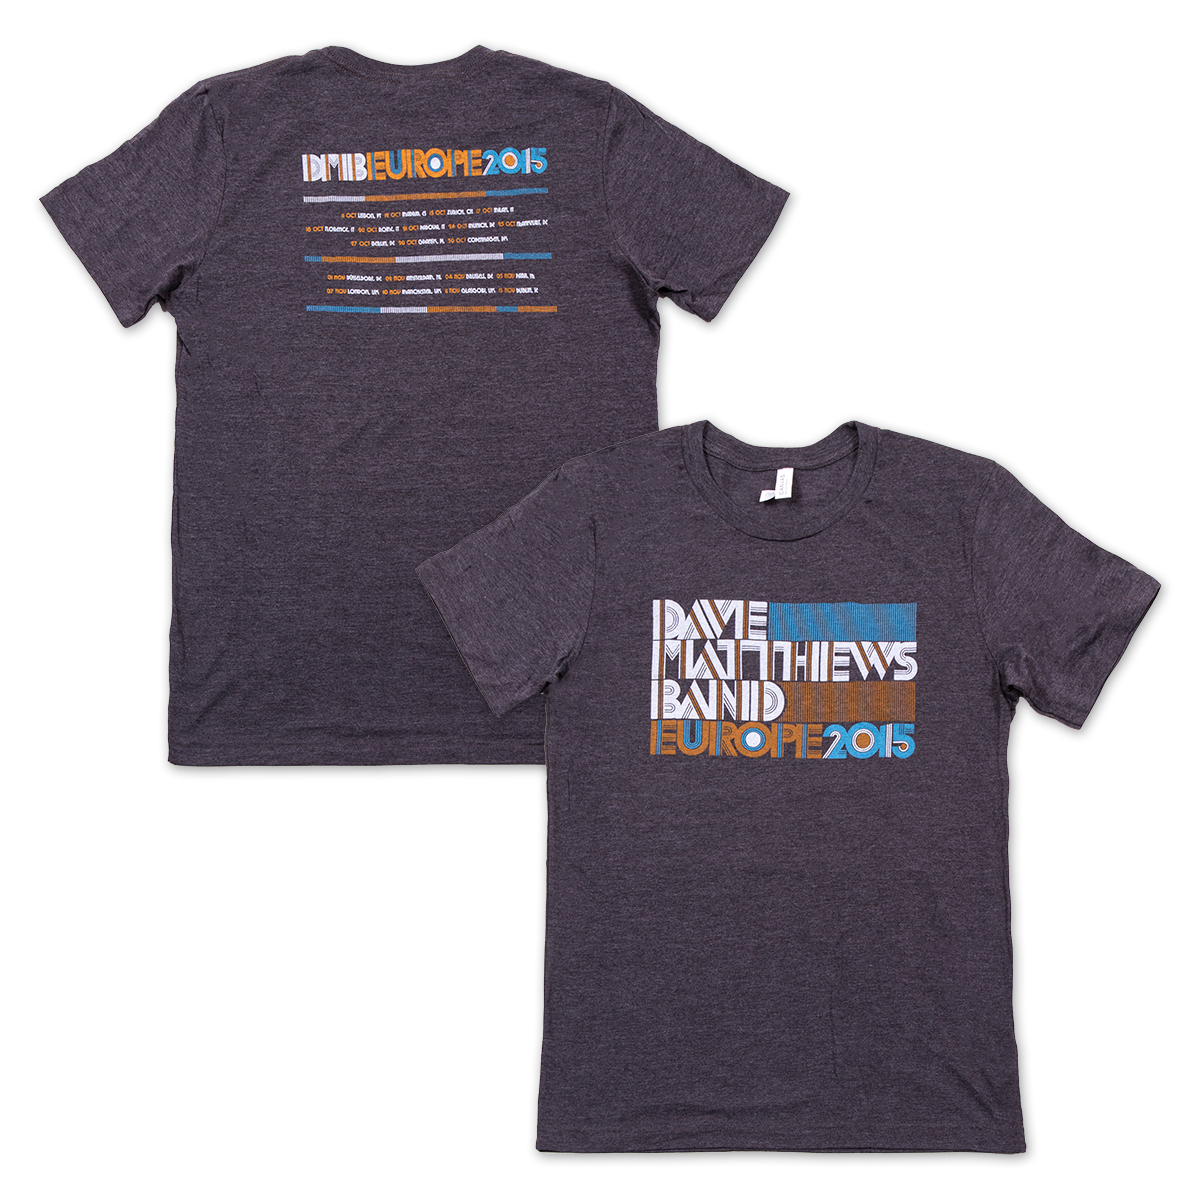 DMB 2015 European Tour T-shirt